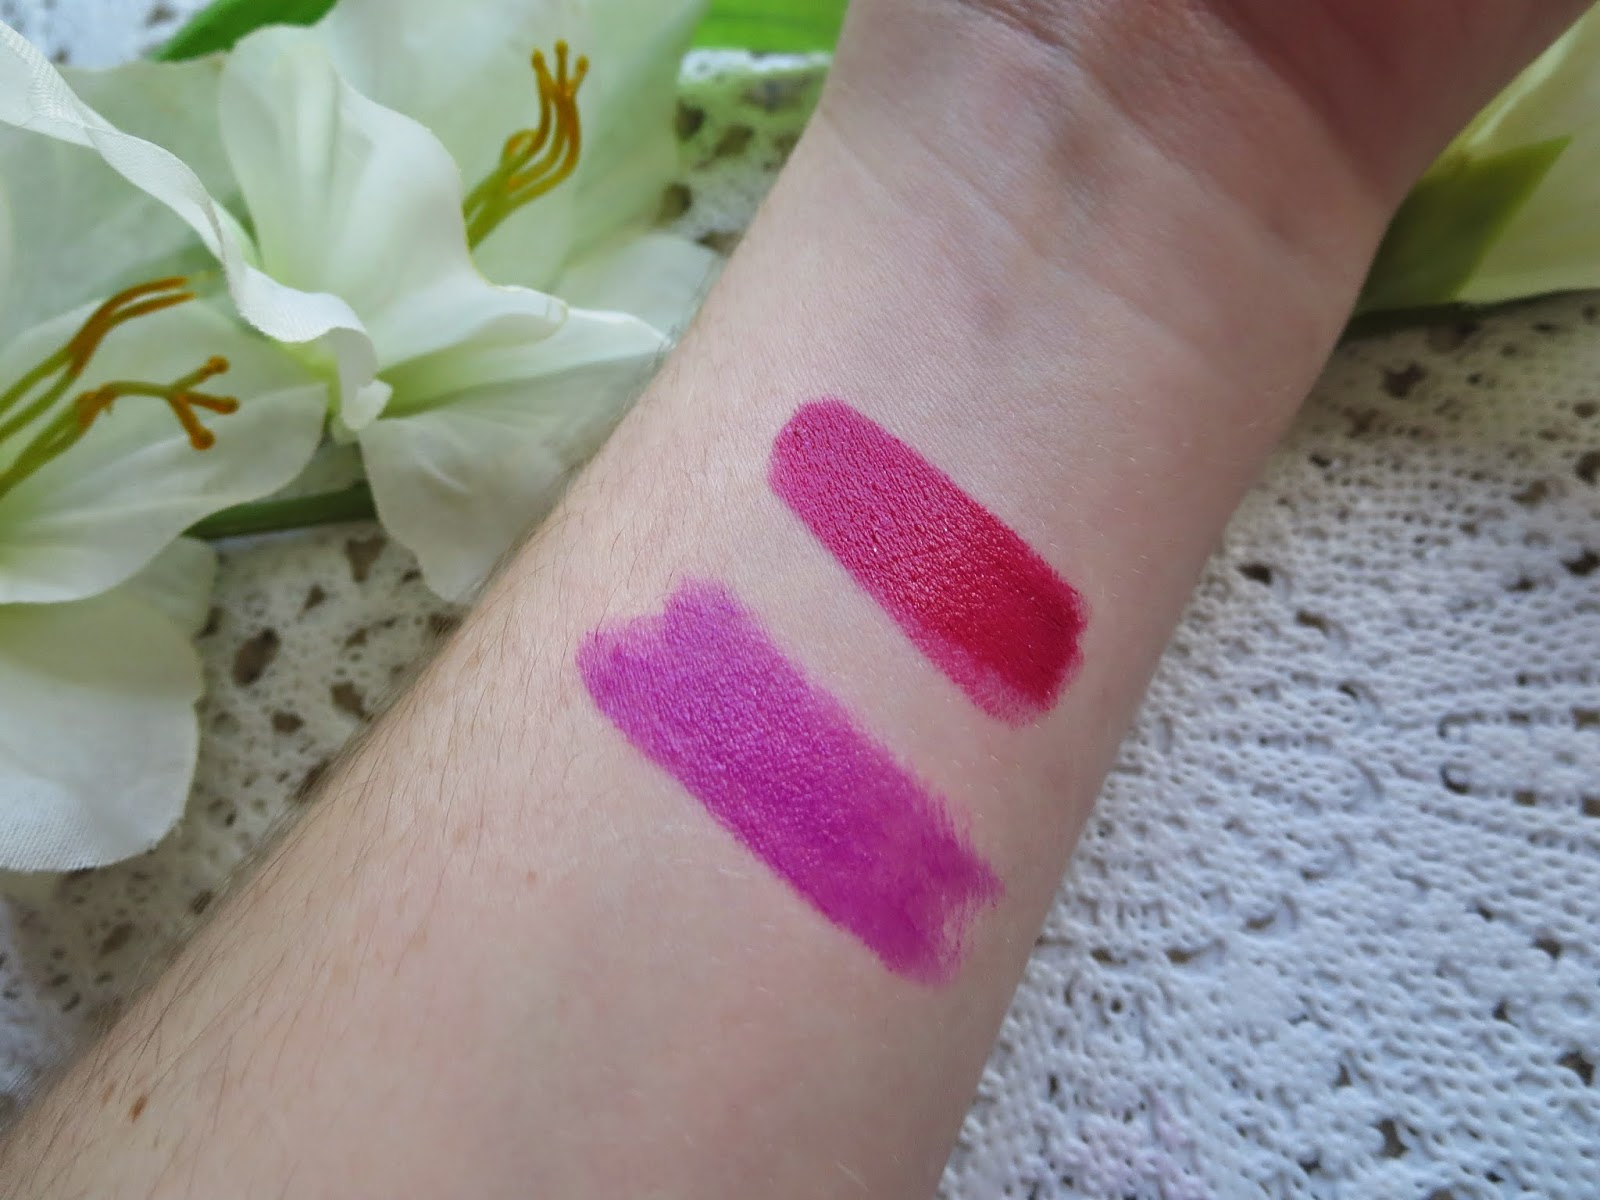 a picture of Maybelline Orchid Ecstasy, Revlon HD Petunia (swatch)